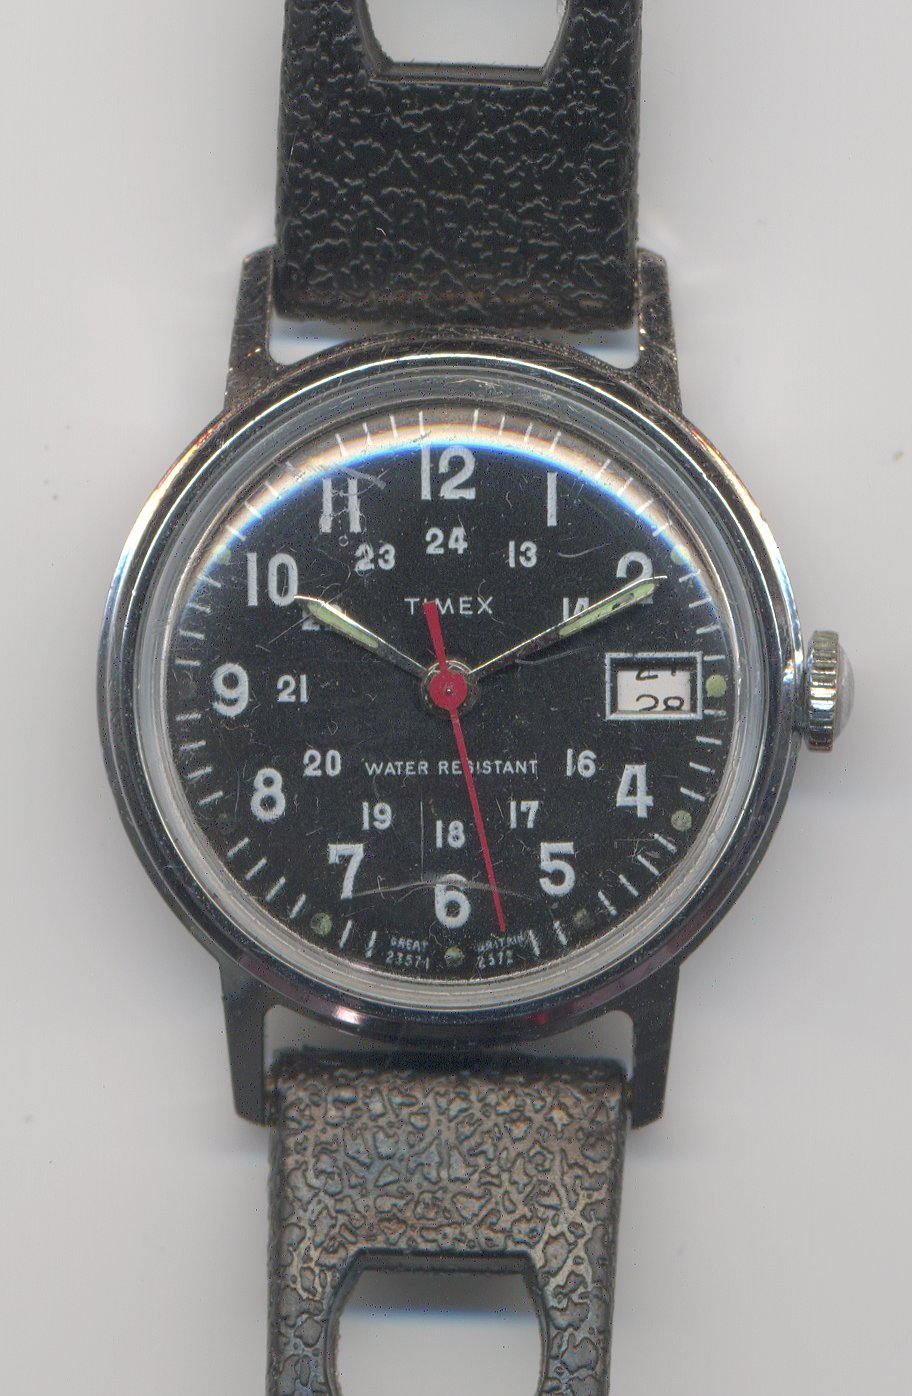 Timex gents watch model 23571